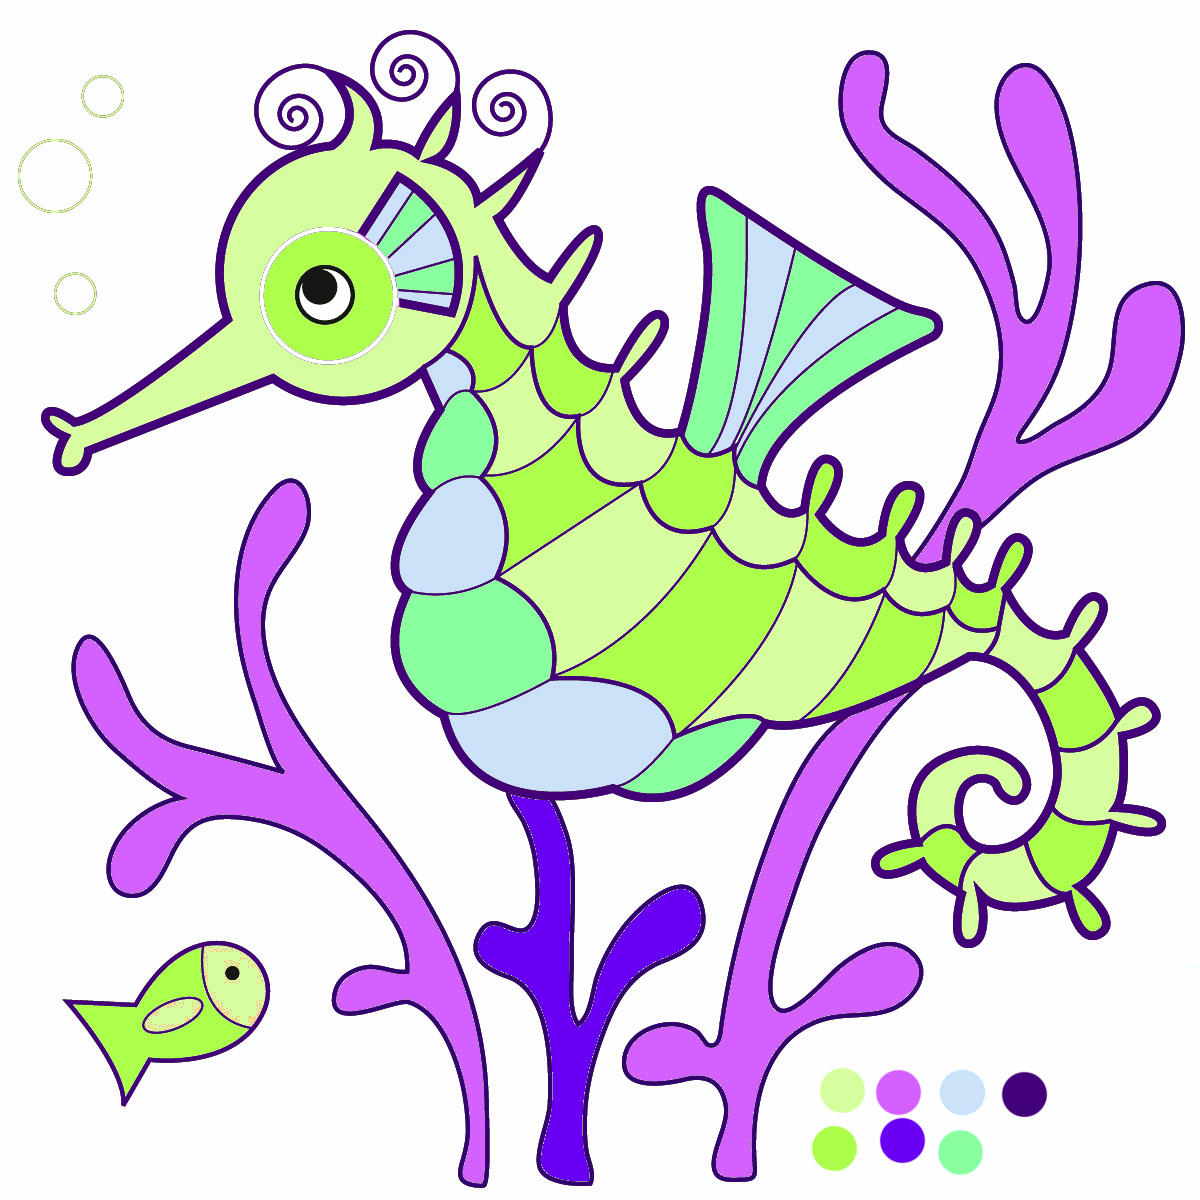 Seahorse clipart #18, Download drawings